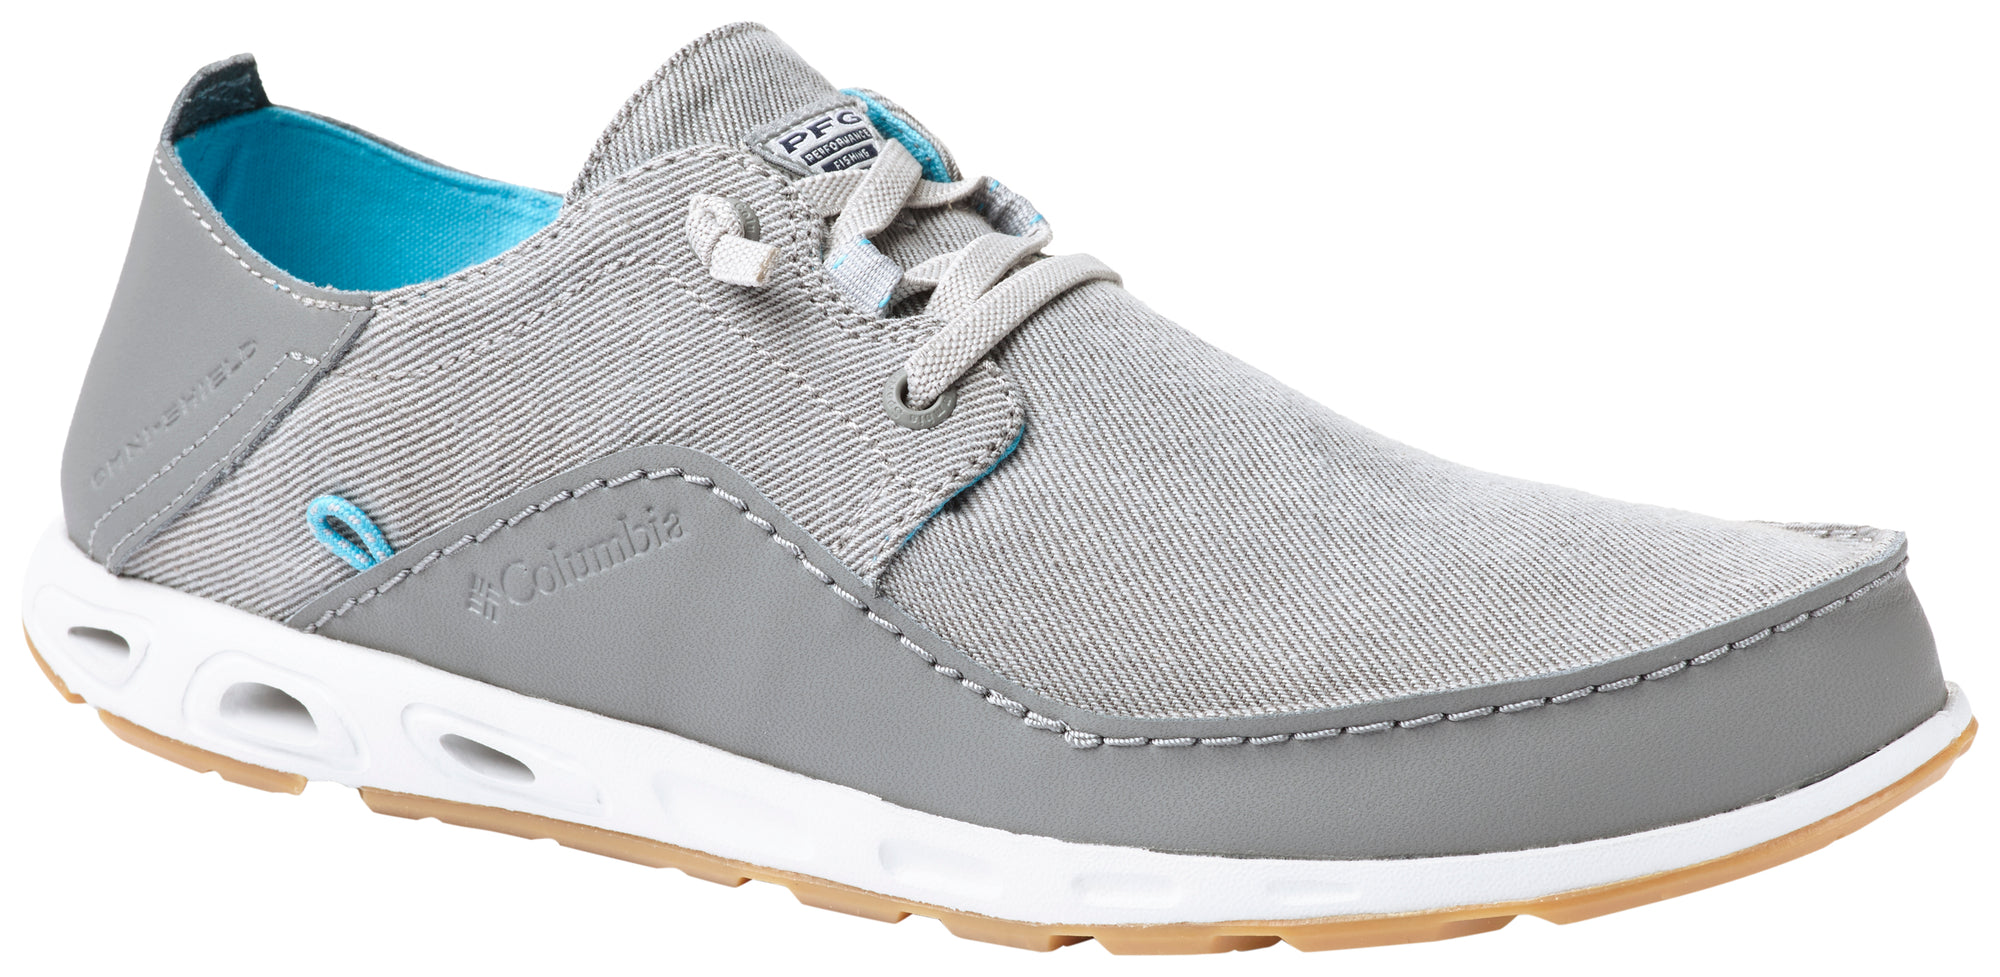 columbia pfg shoes buy clothes shoes online